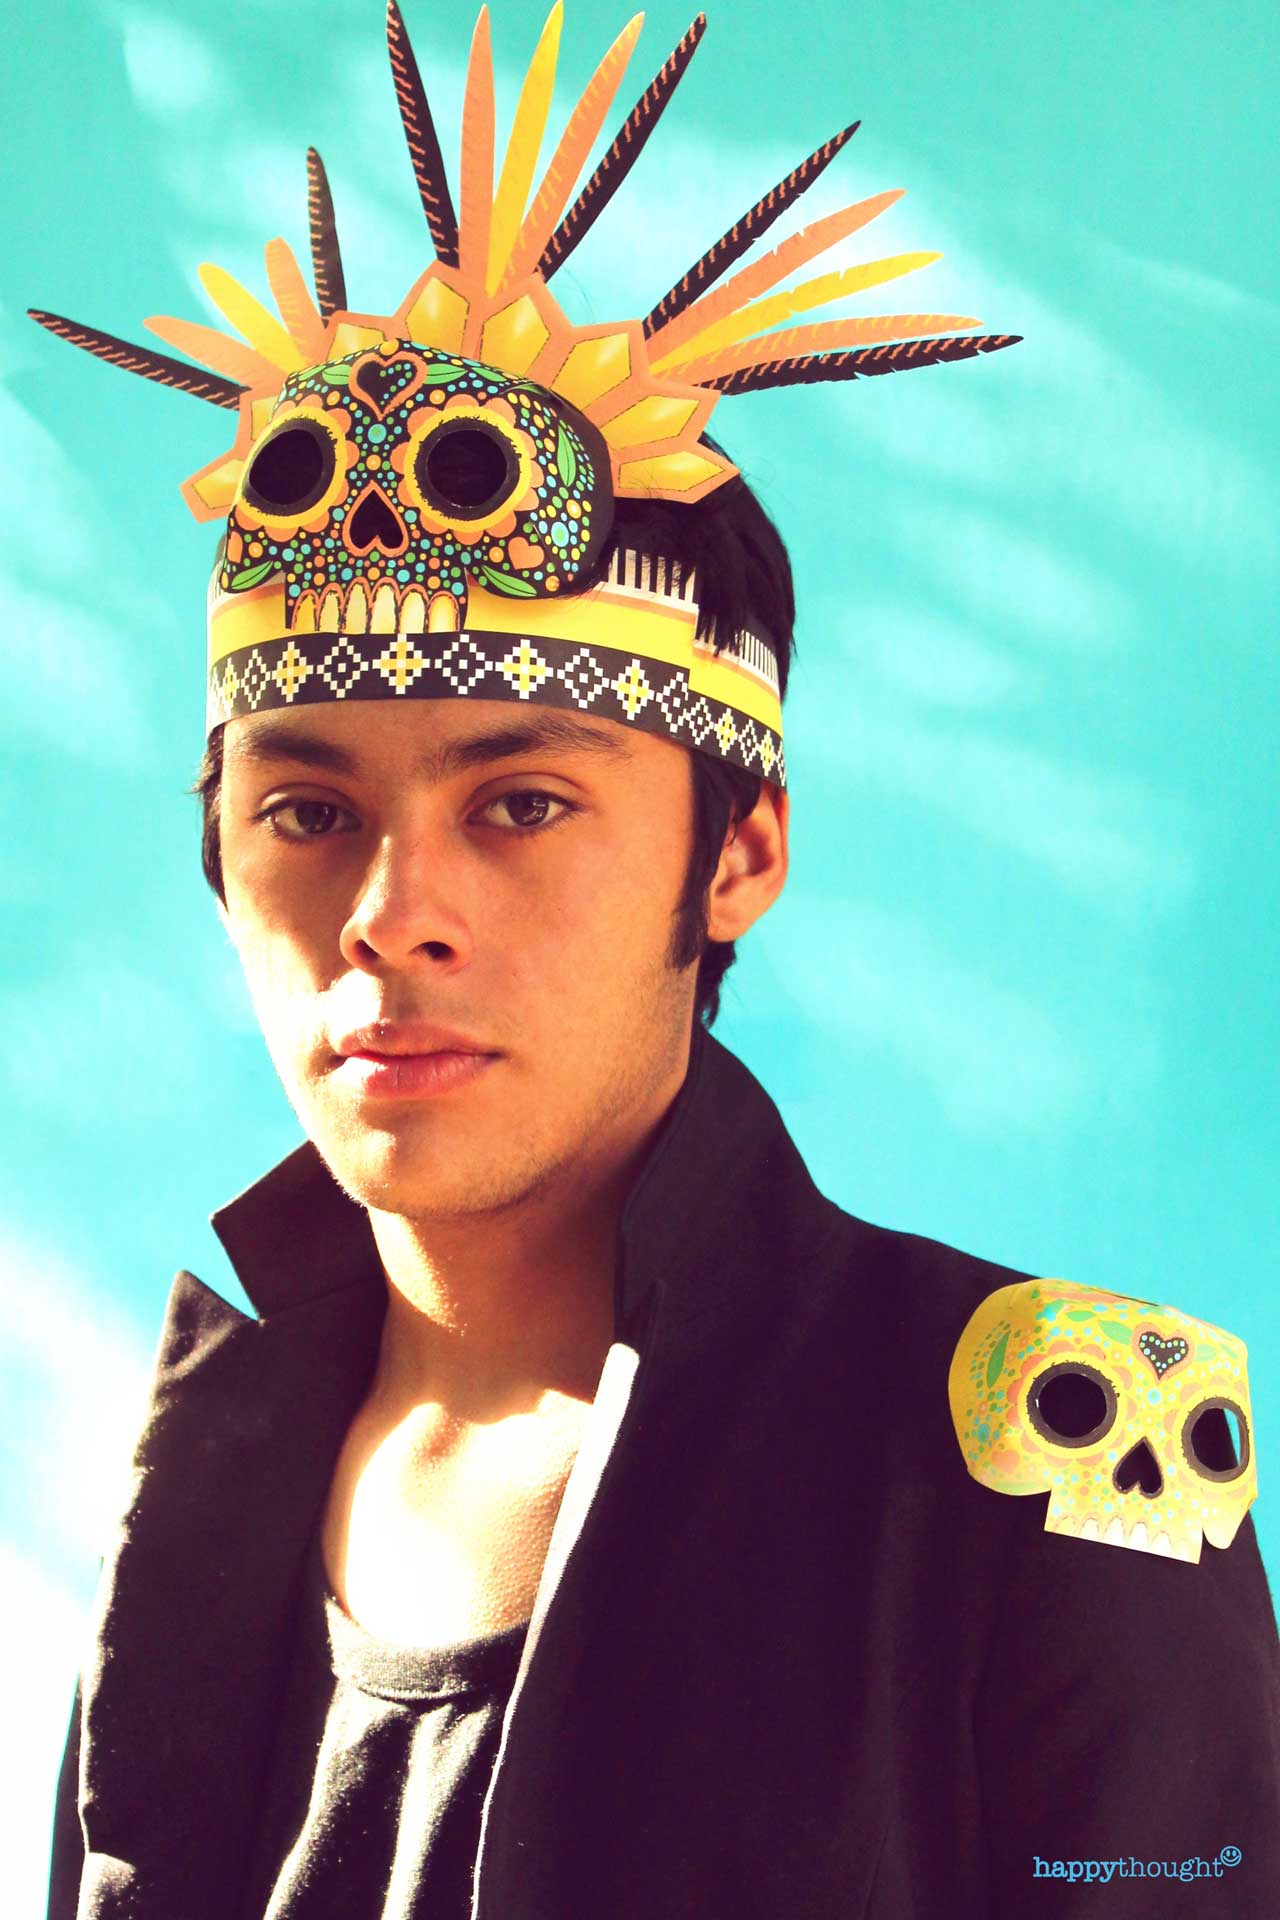 Make your own printable DIY chimalli headdress for a Day of the Dead celebration